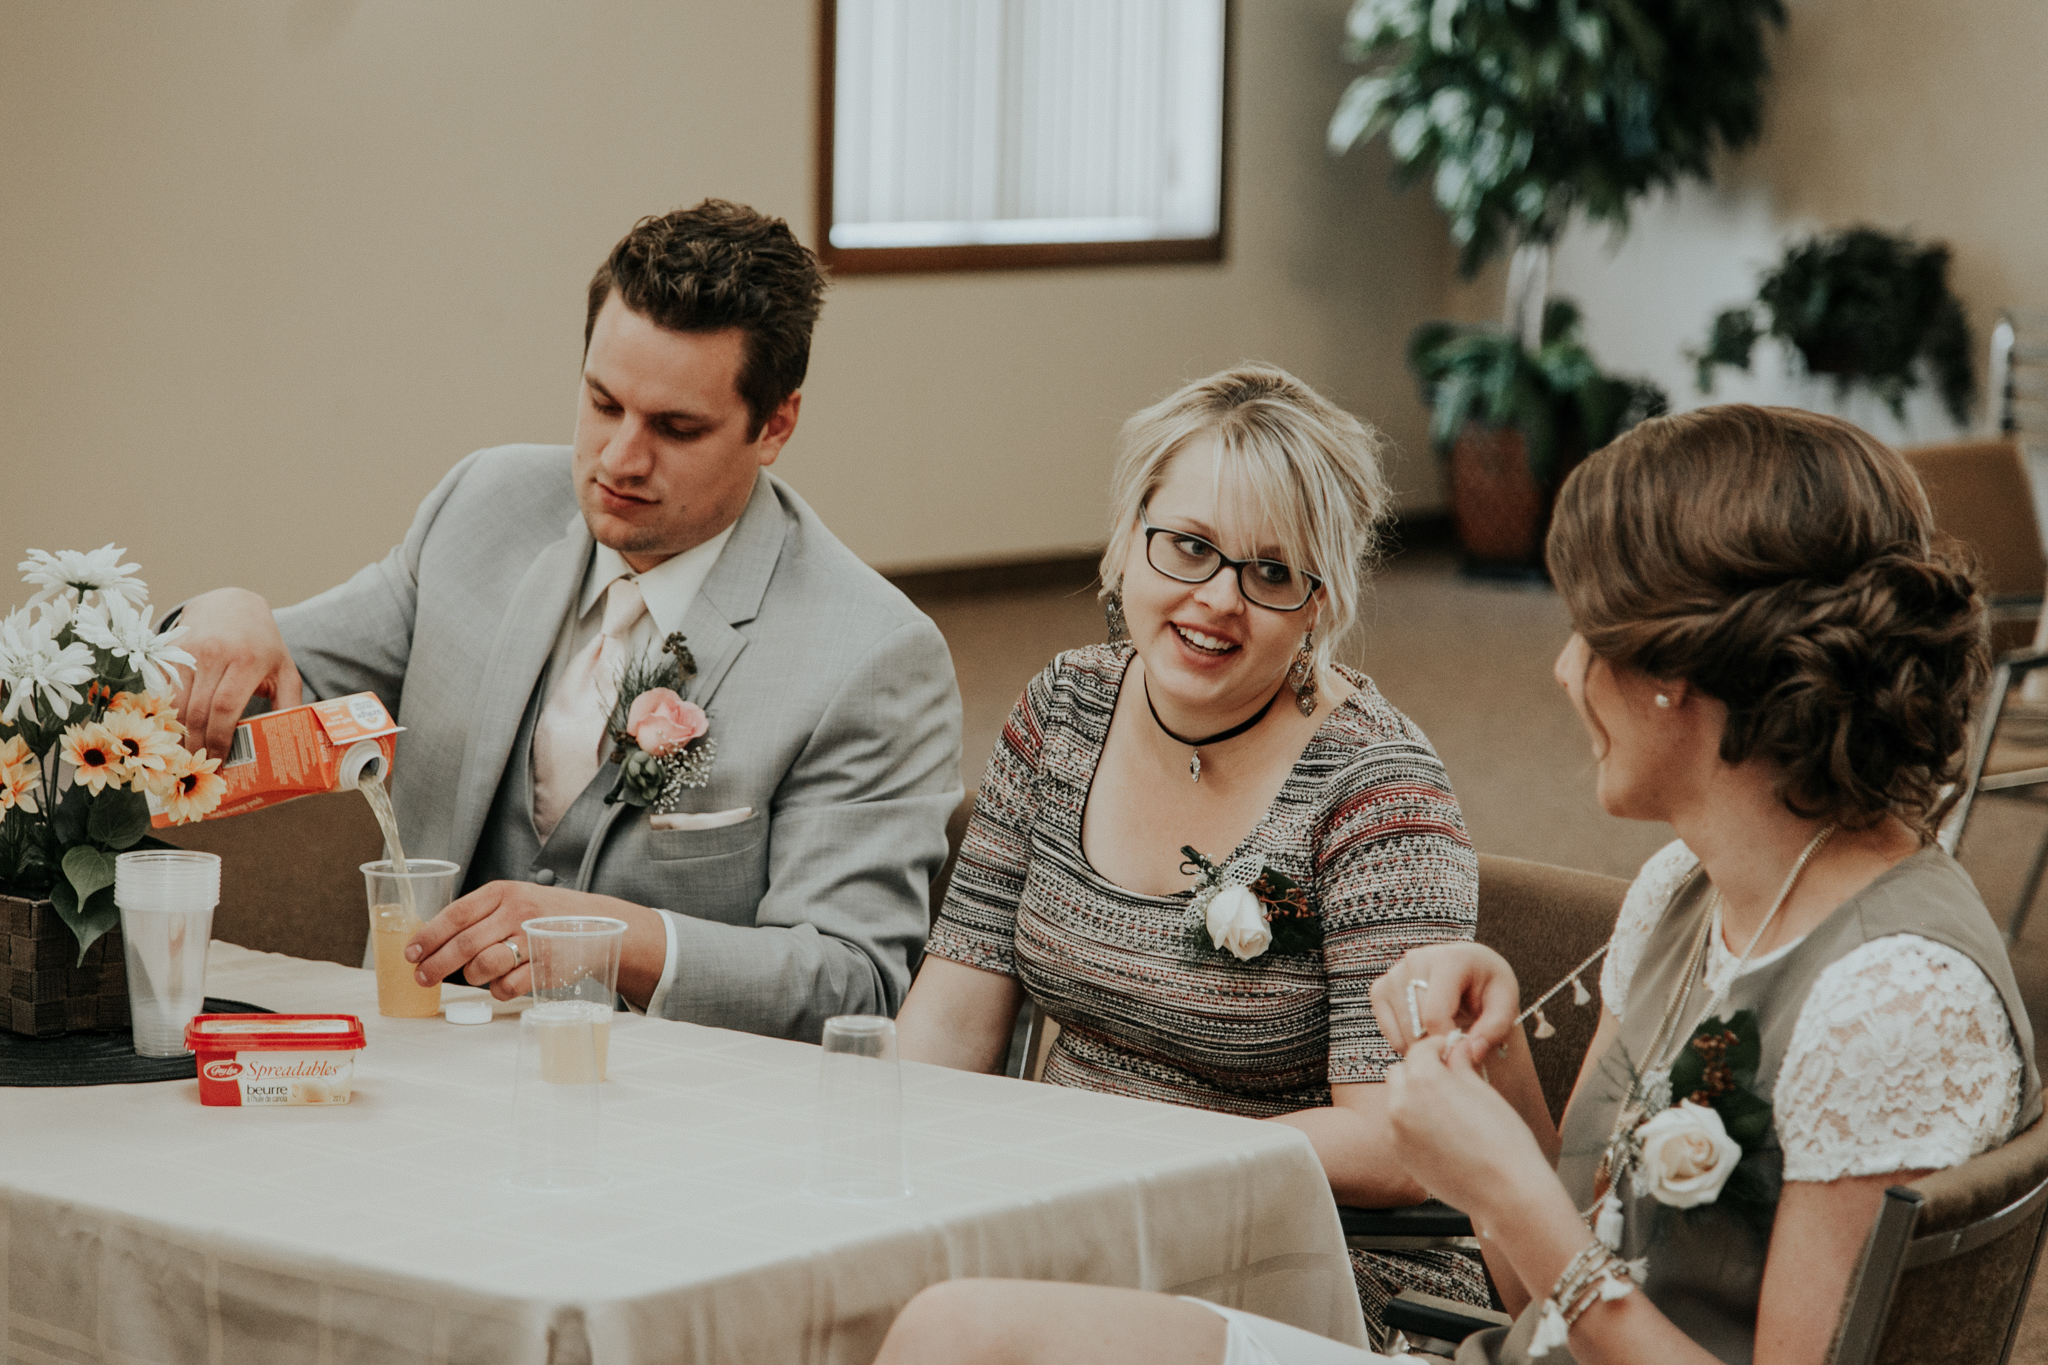 lethbridge-wedding-photographer-love-and-be-loved-photography-steven-marlene-reformed-church-photo-picture-image-29.jpg